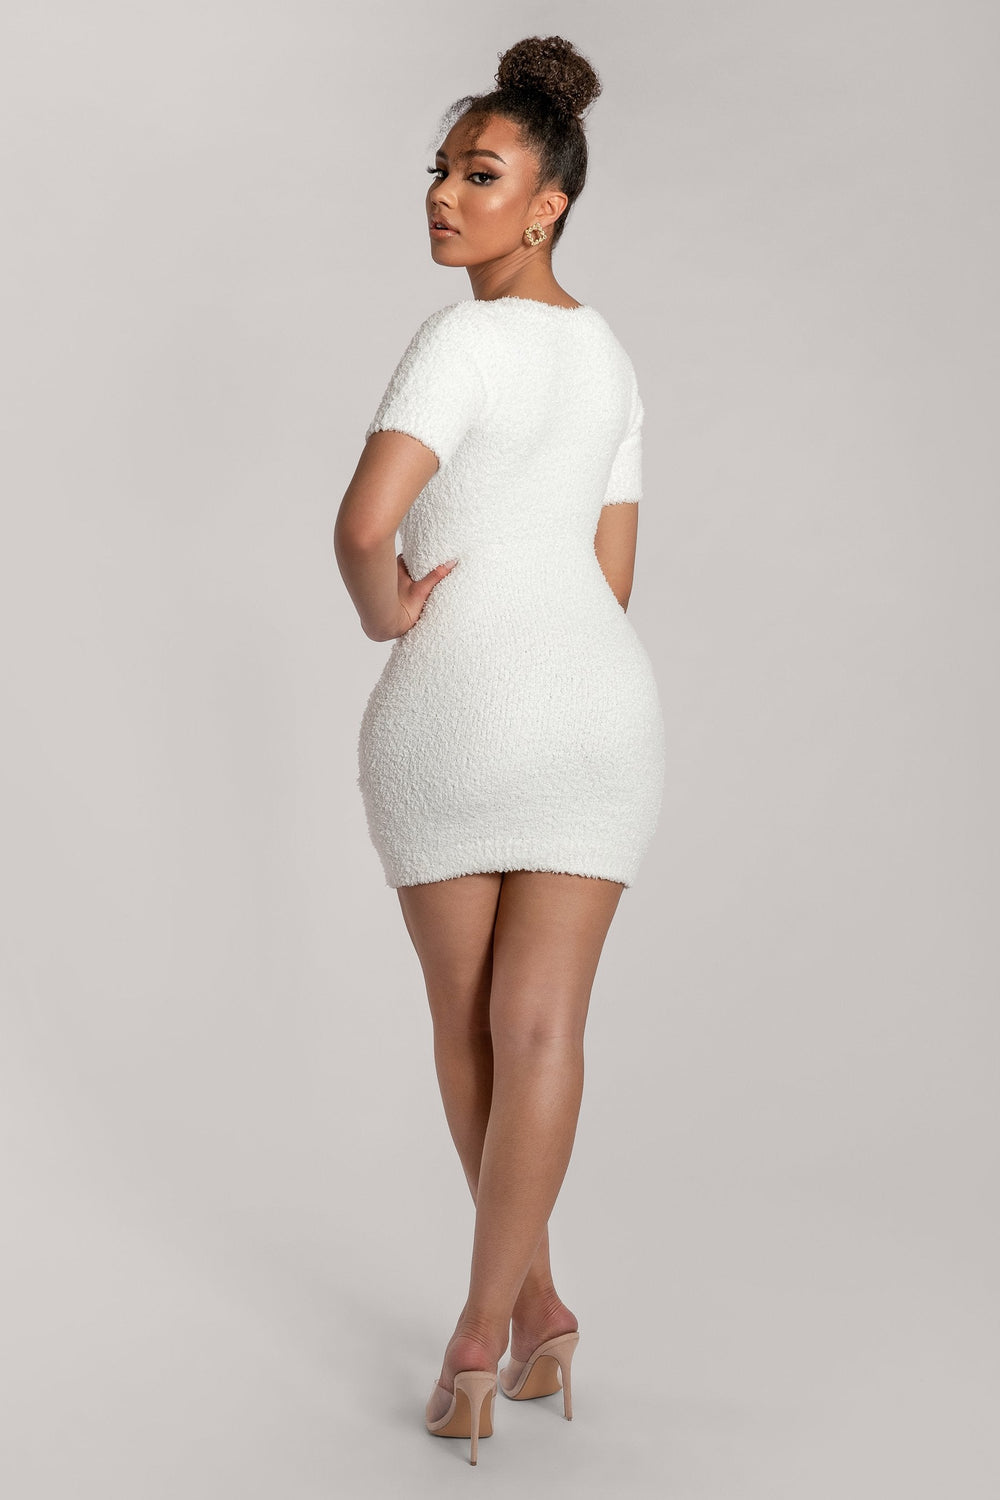 Maria Popcorn Short Sleeve Mini Dress - Cream - MESHKI ?id=15939405480011